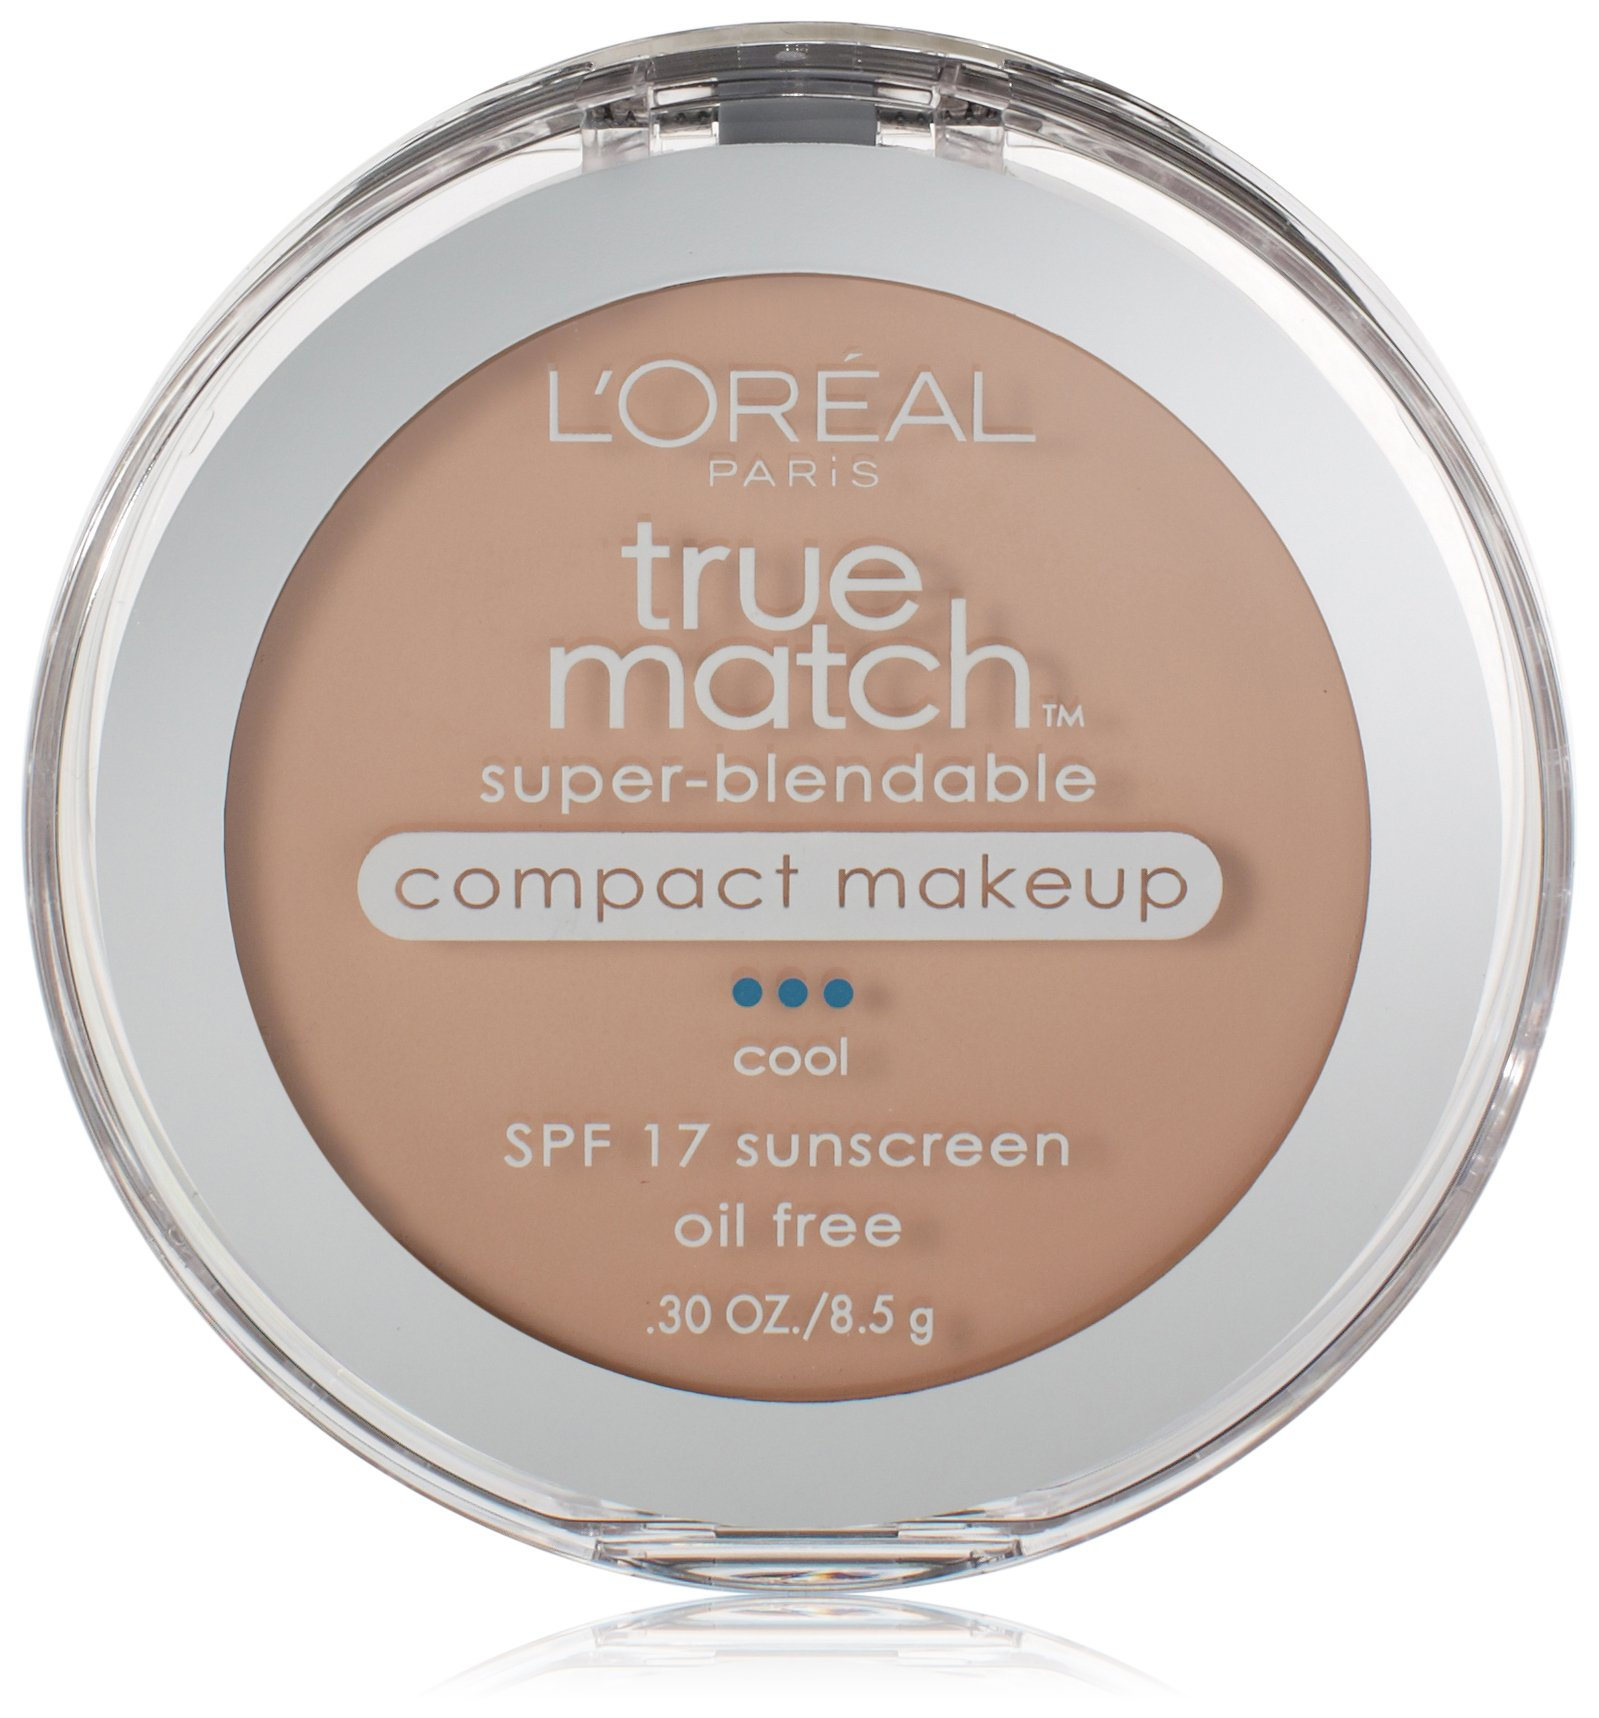 L'Oreal Paris True Match Super-Blendable Compact Makeup, Natural Ivory, 0.30 Ounces